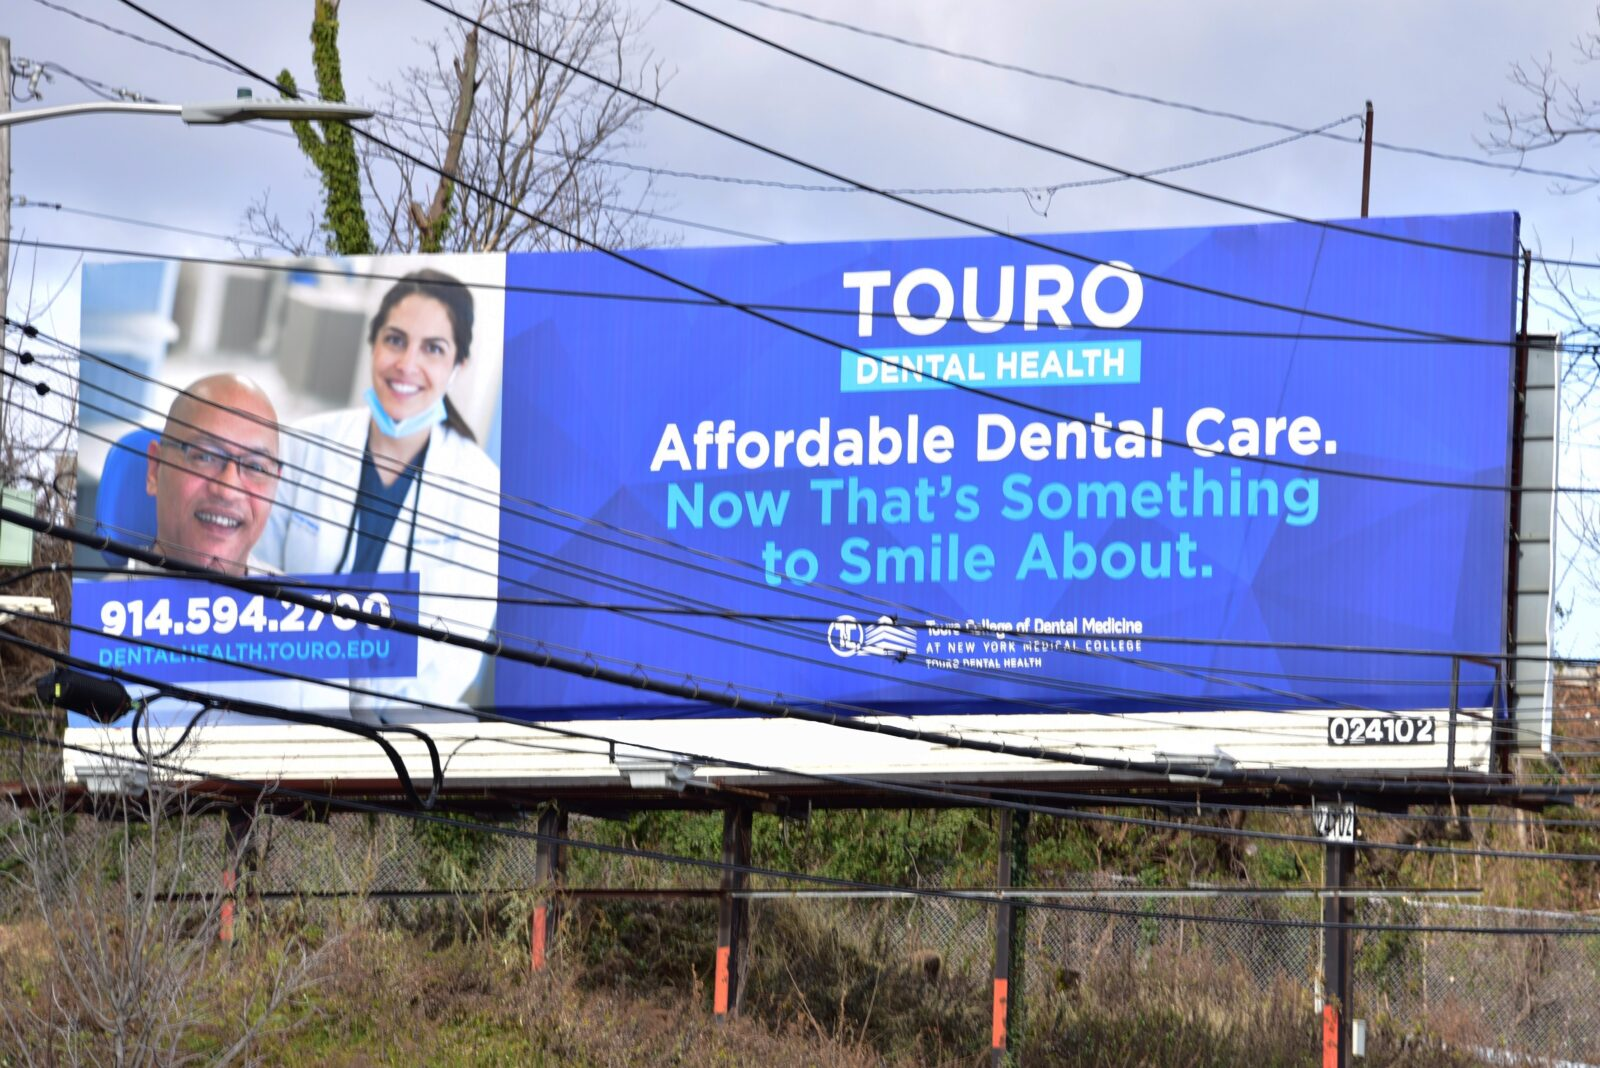 Touro College Billboard Advertising